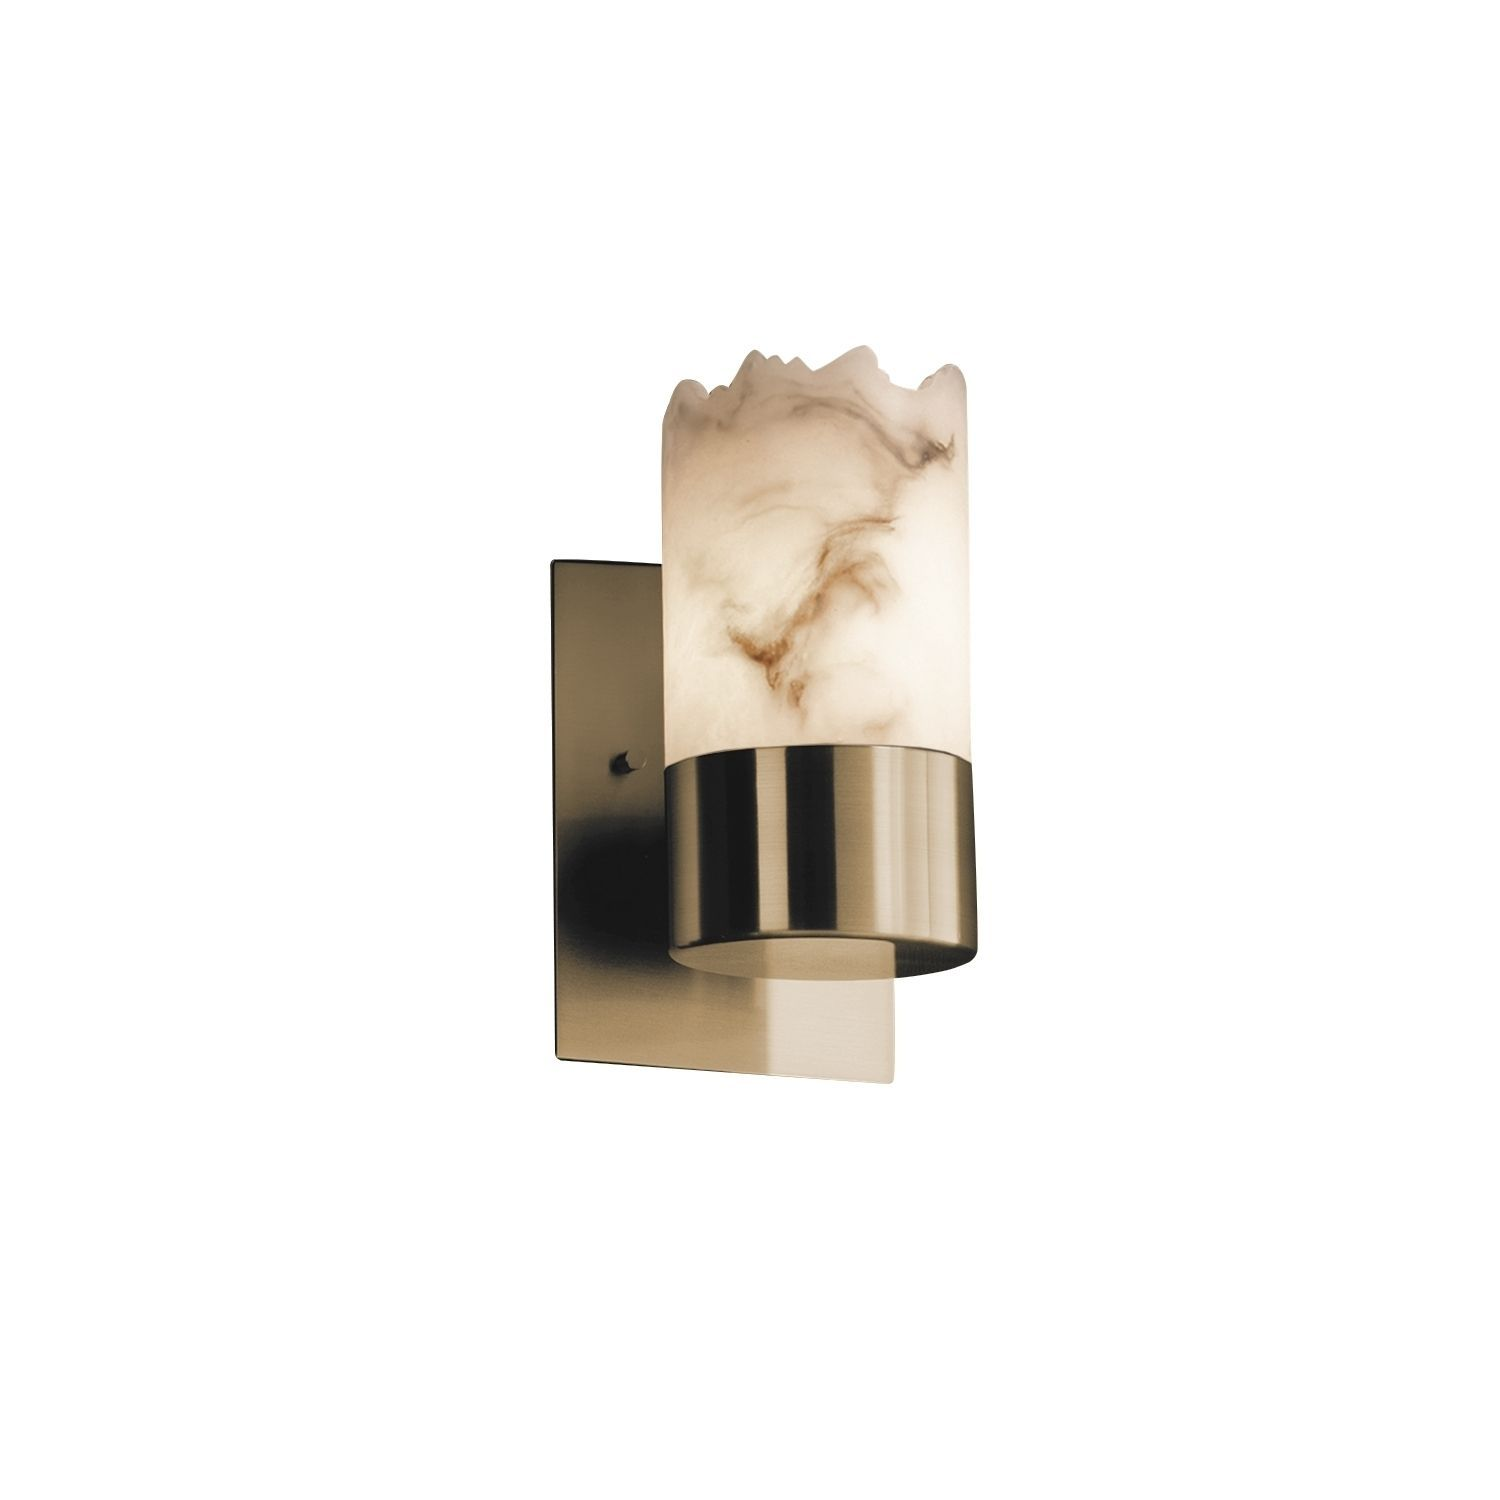 Justice design dakota 1 uplight wall sconce products sconces justice design dakota 1 uplight wall sconce amipublicfo Gallery